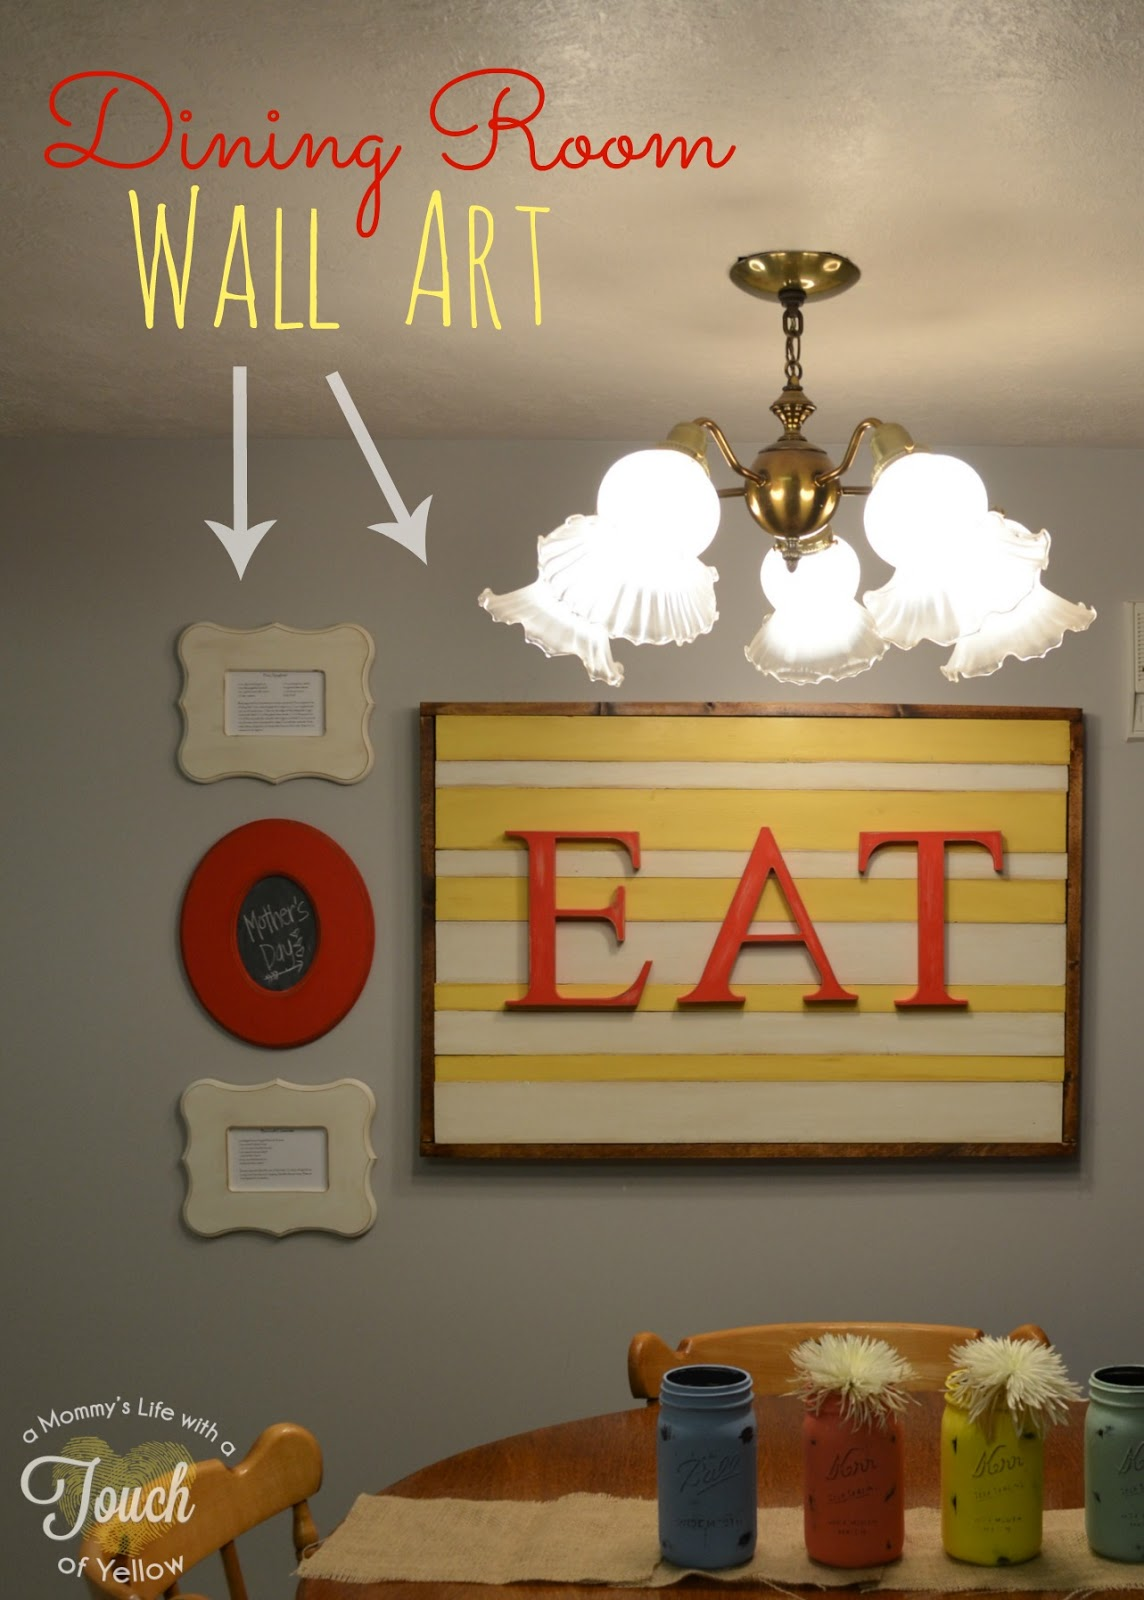 Poppy seed projects guest post diy dining room wall art for Wall hanging ideas for dining room